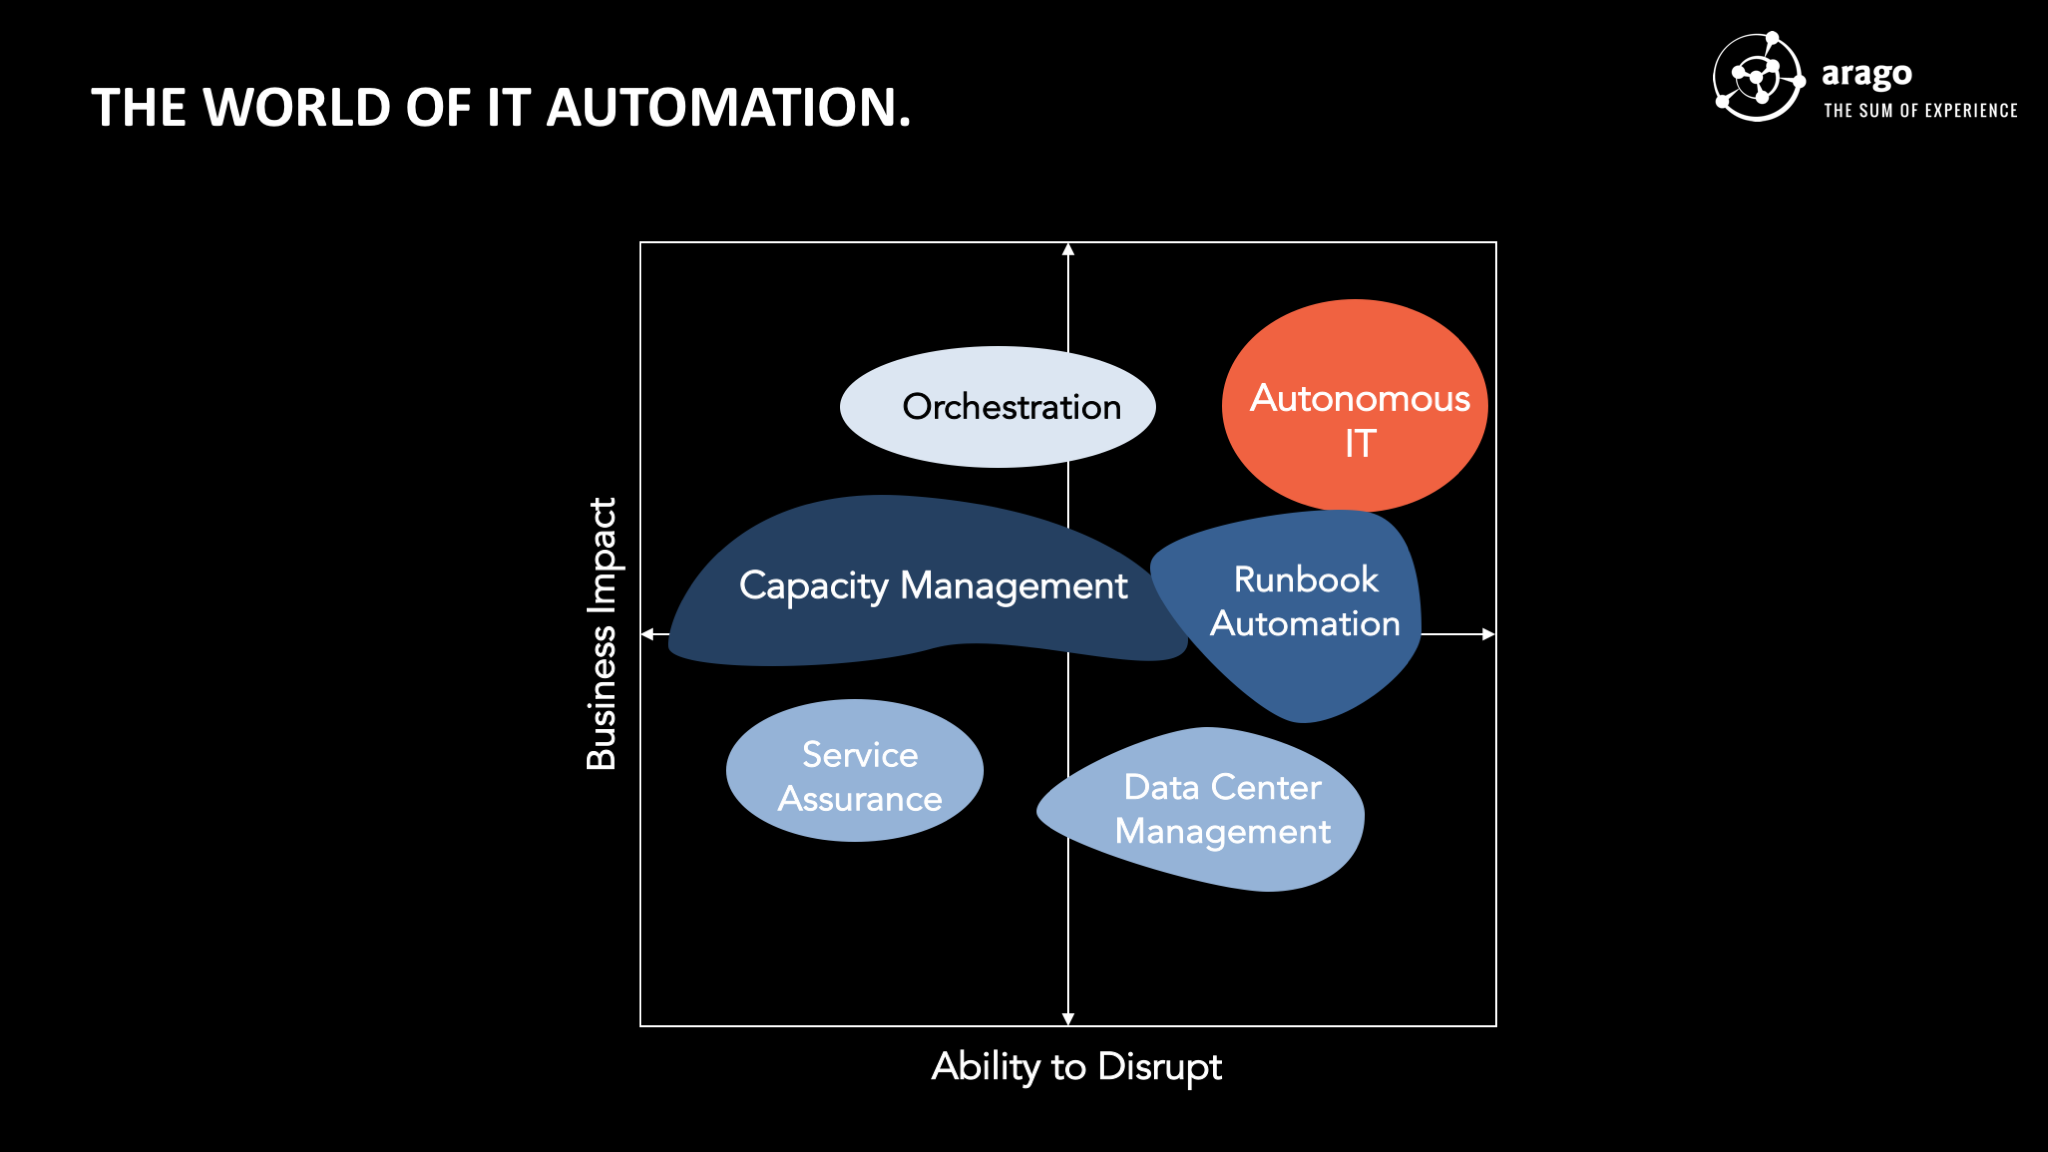 Figure: The World of IT Automation.